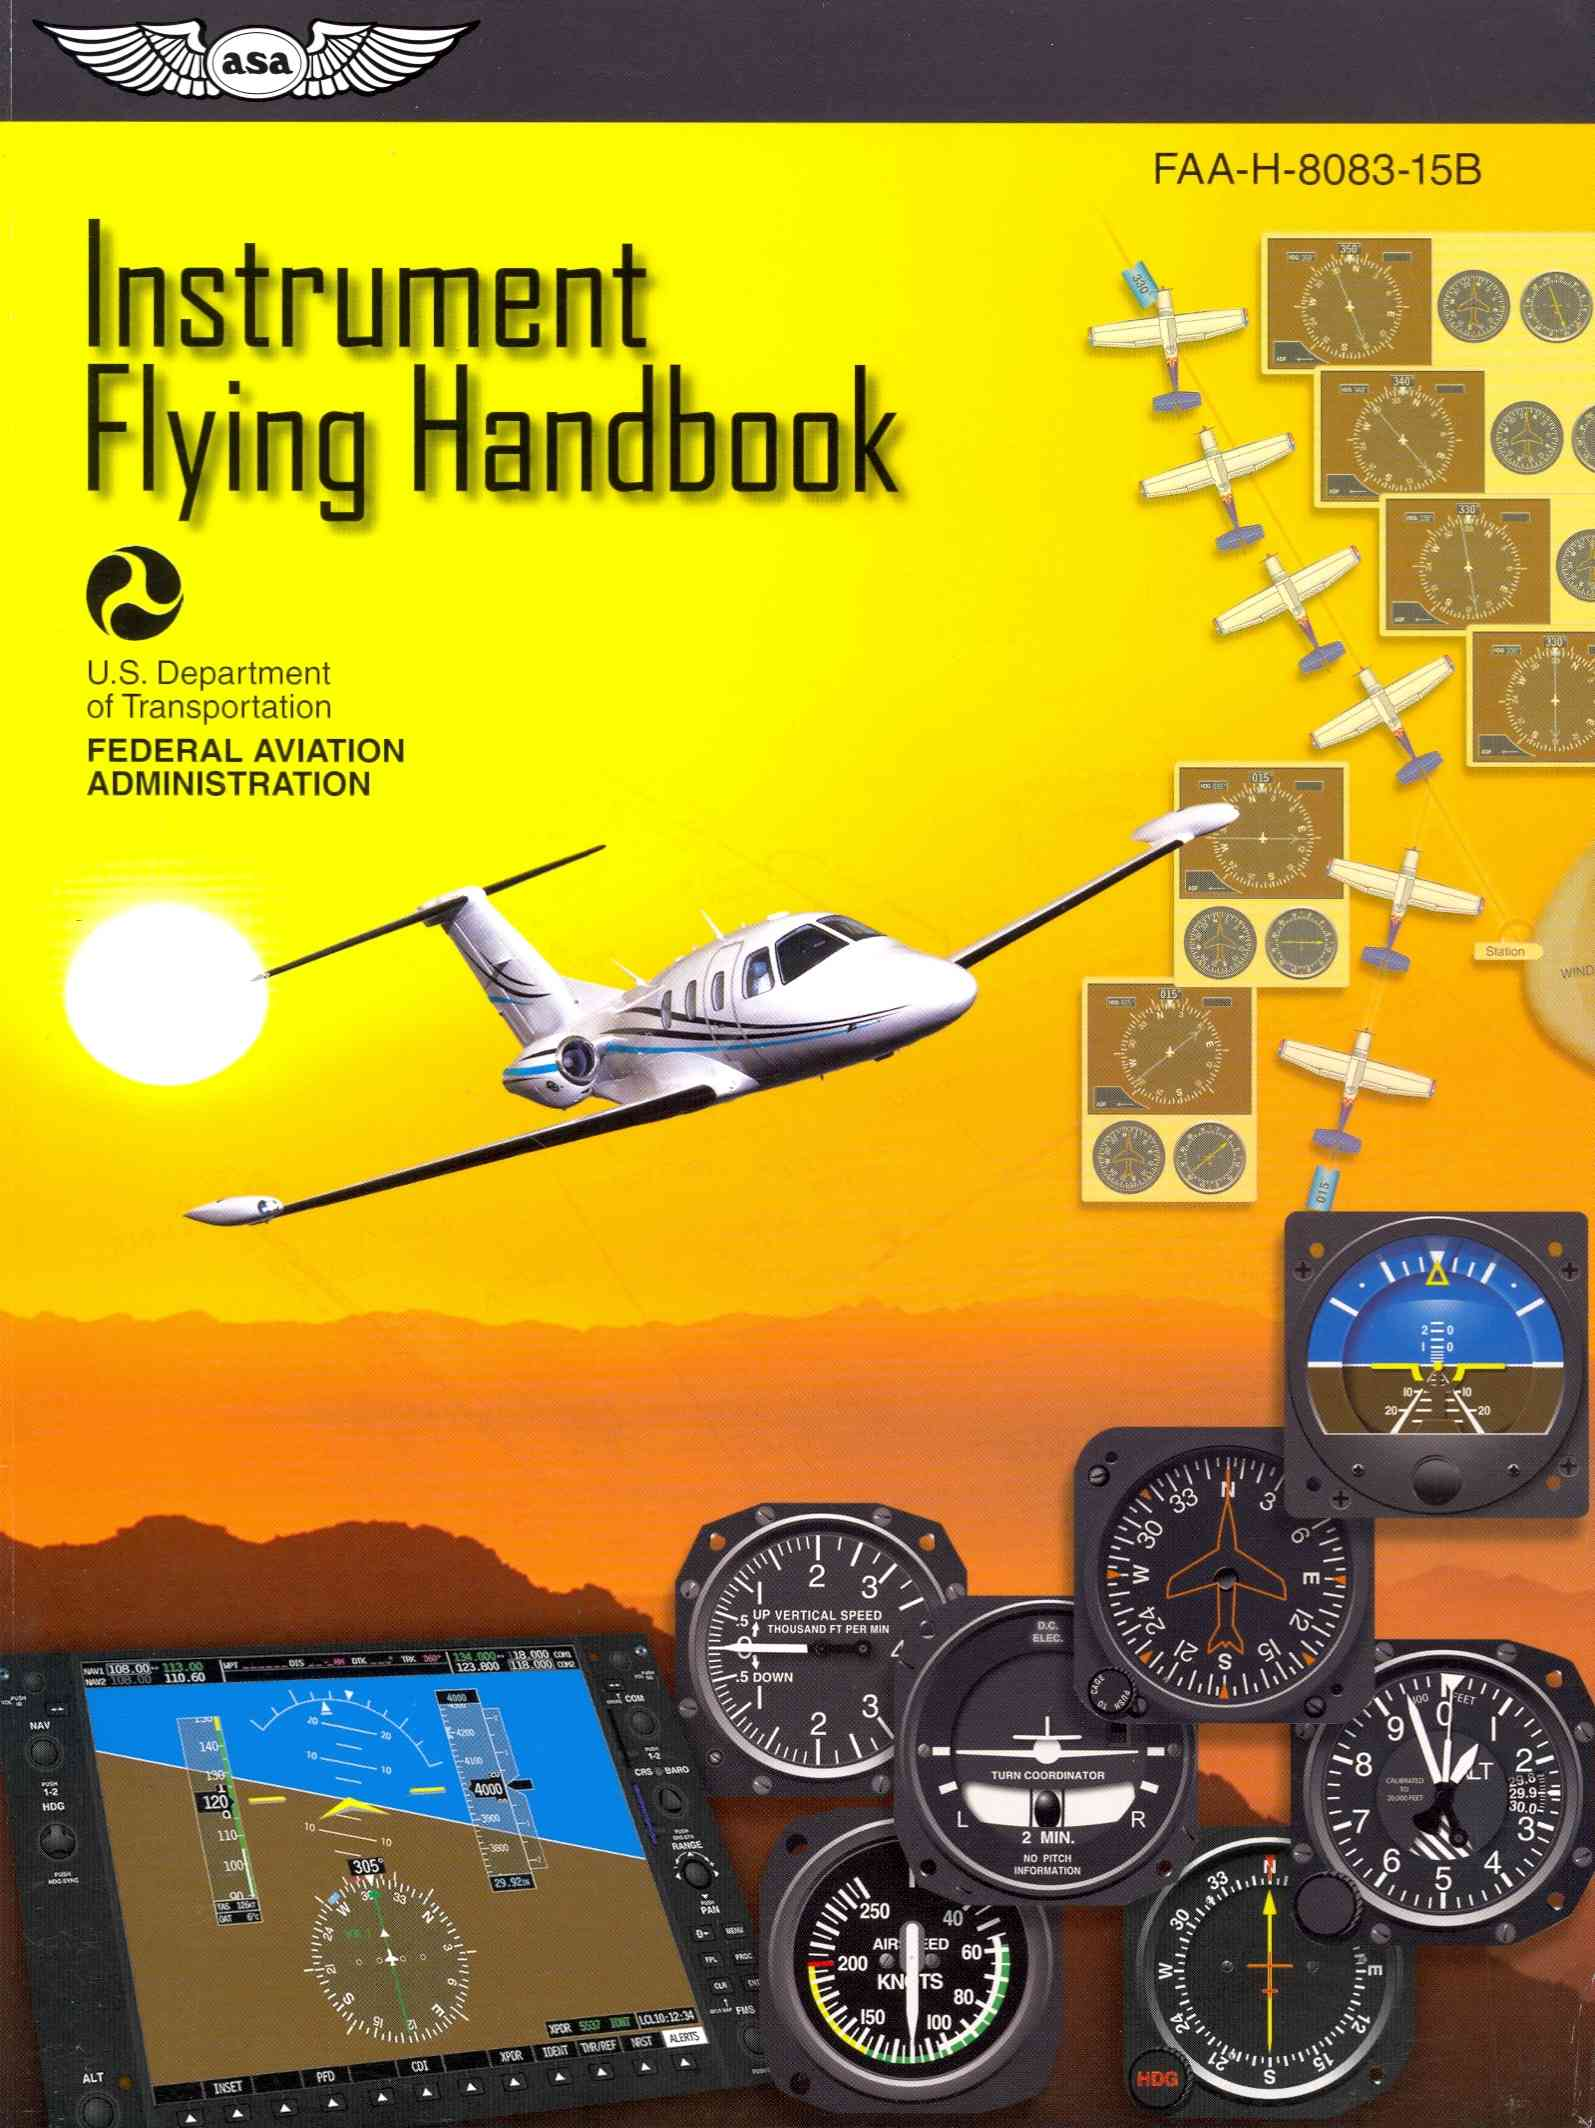 Instrument Flying Handbook By Federal Aviation Administration (Faa)